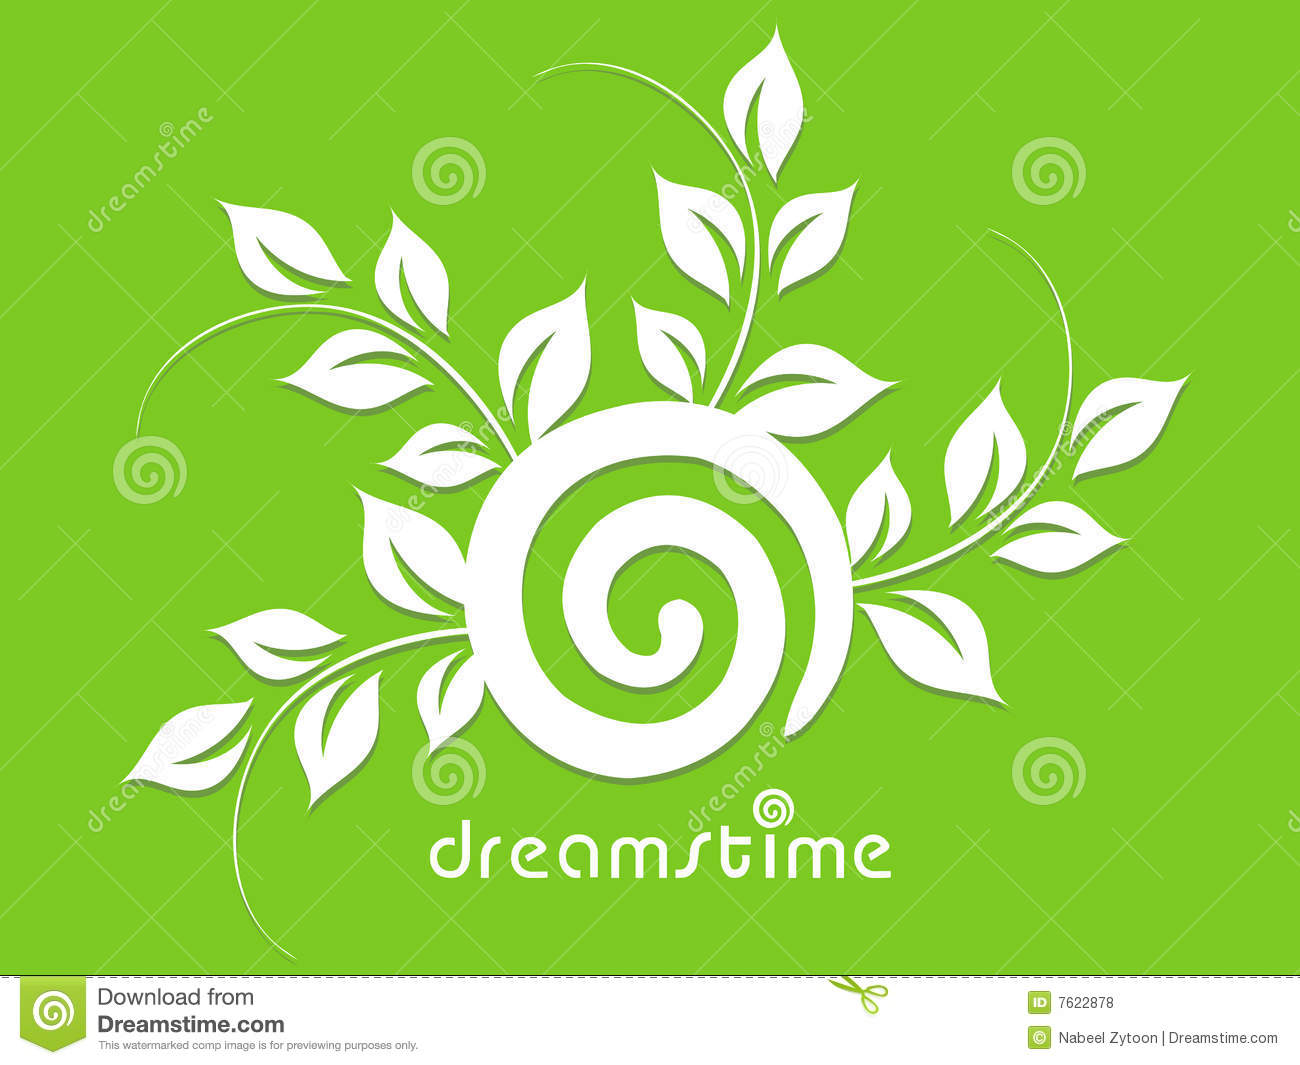 Dreamstime is a stock photo agency with almost 15 years in the industry. Being one of the early players in the microstock business, they forged a great reputation and .